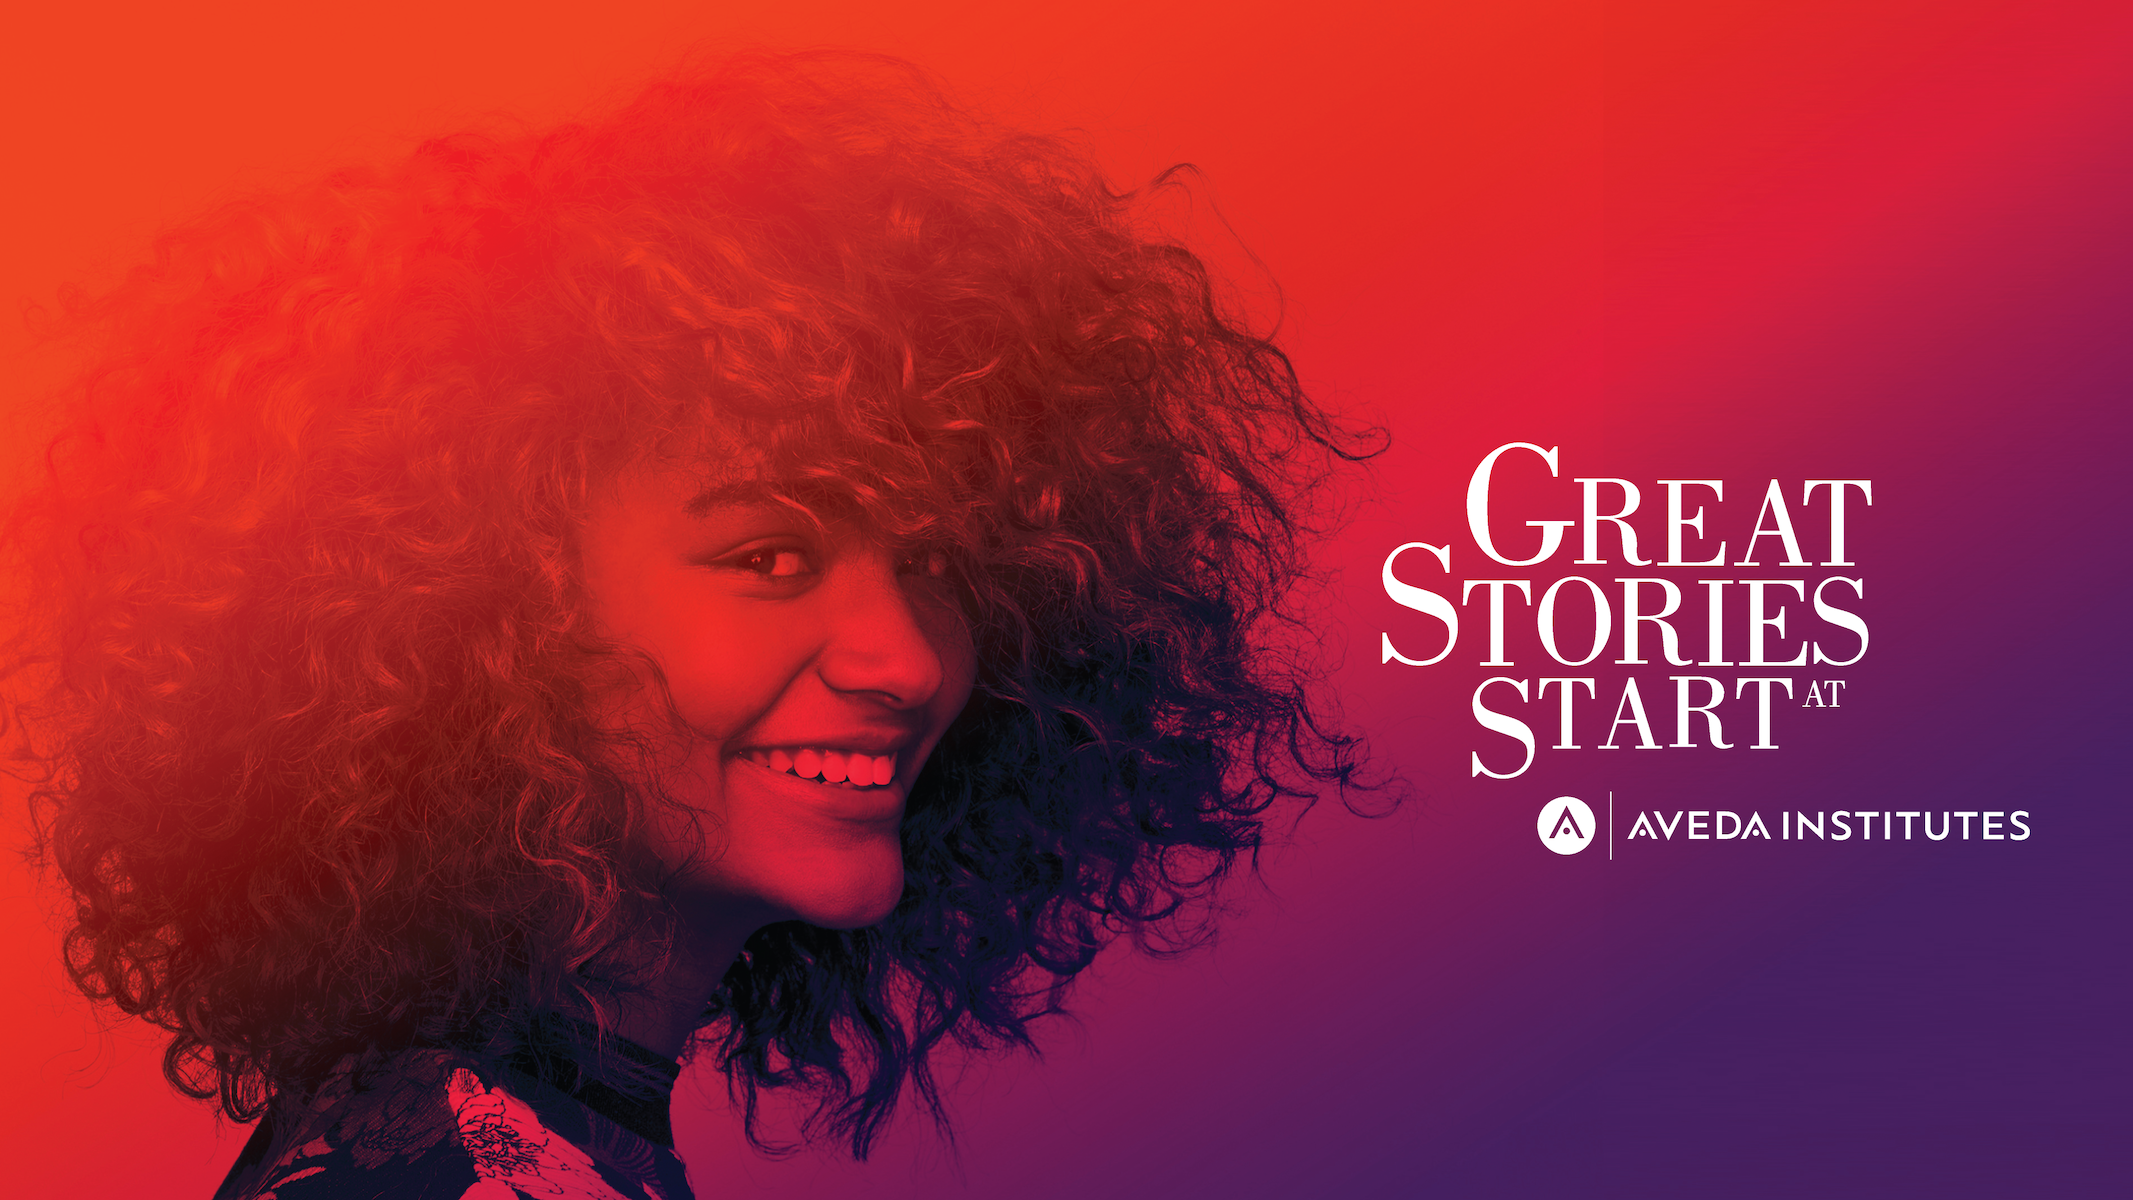 Great Stories Start at Aveda Institutes